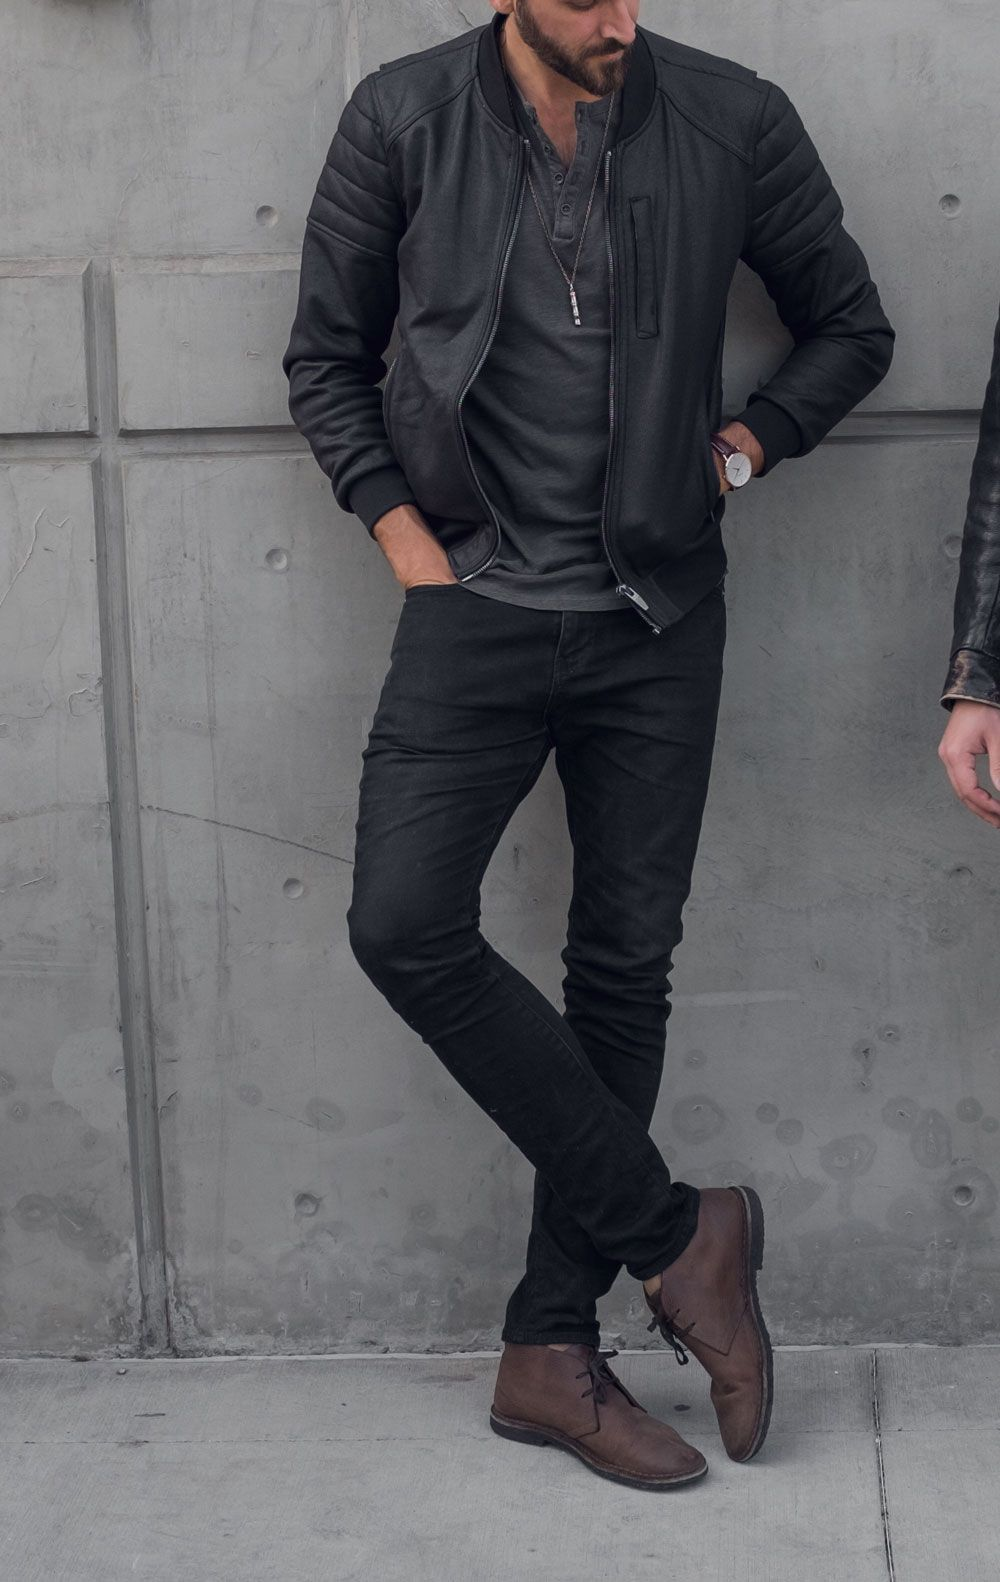 black jeans brown boots outfit mens